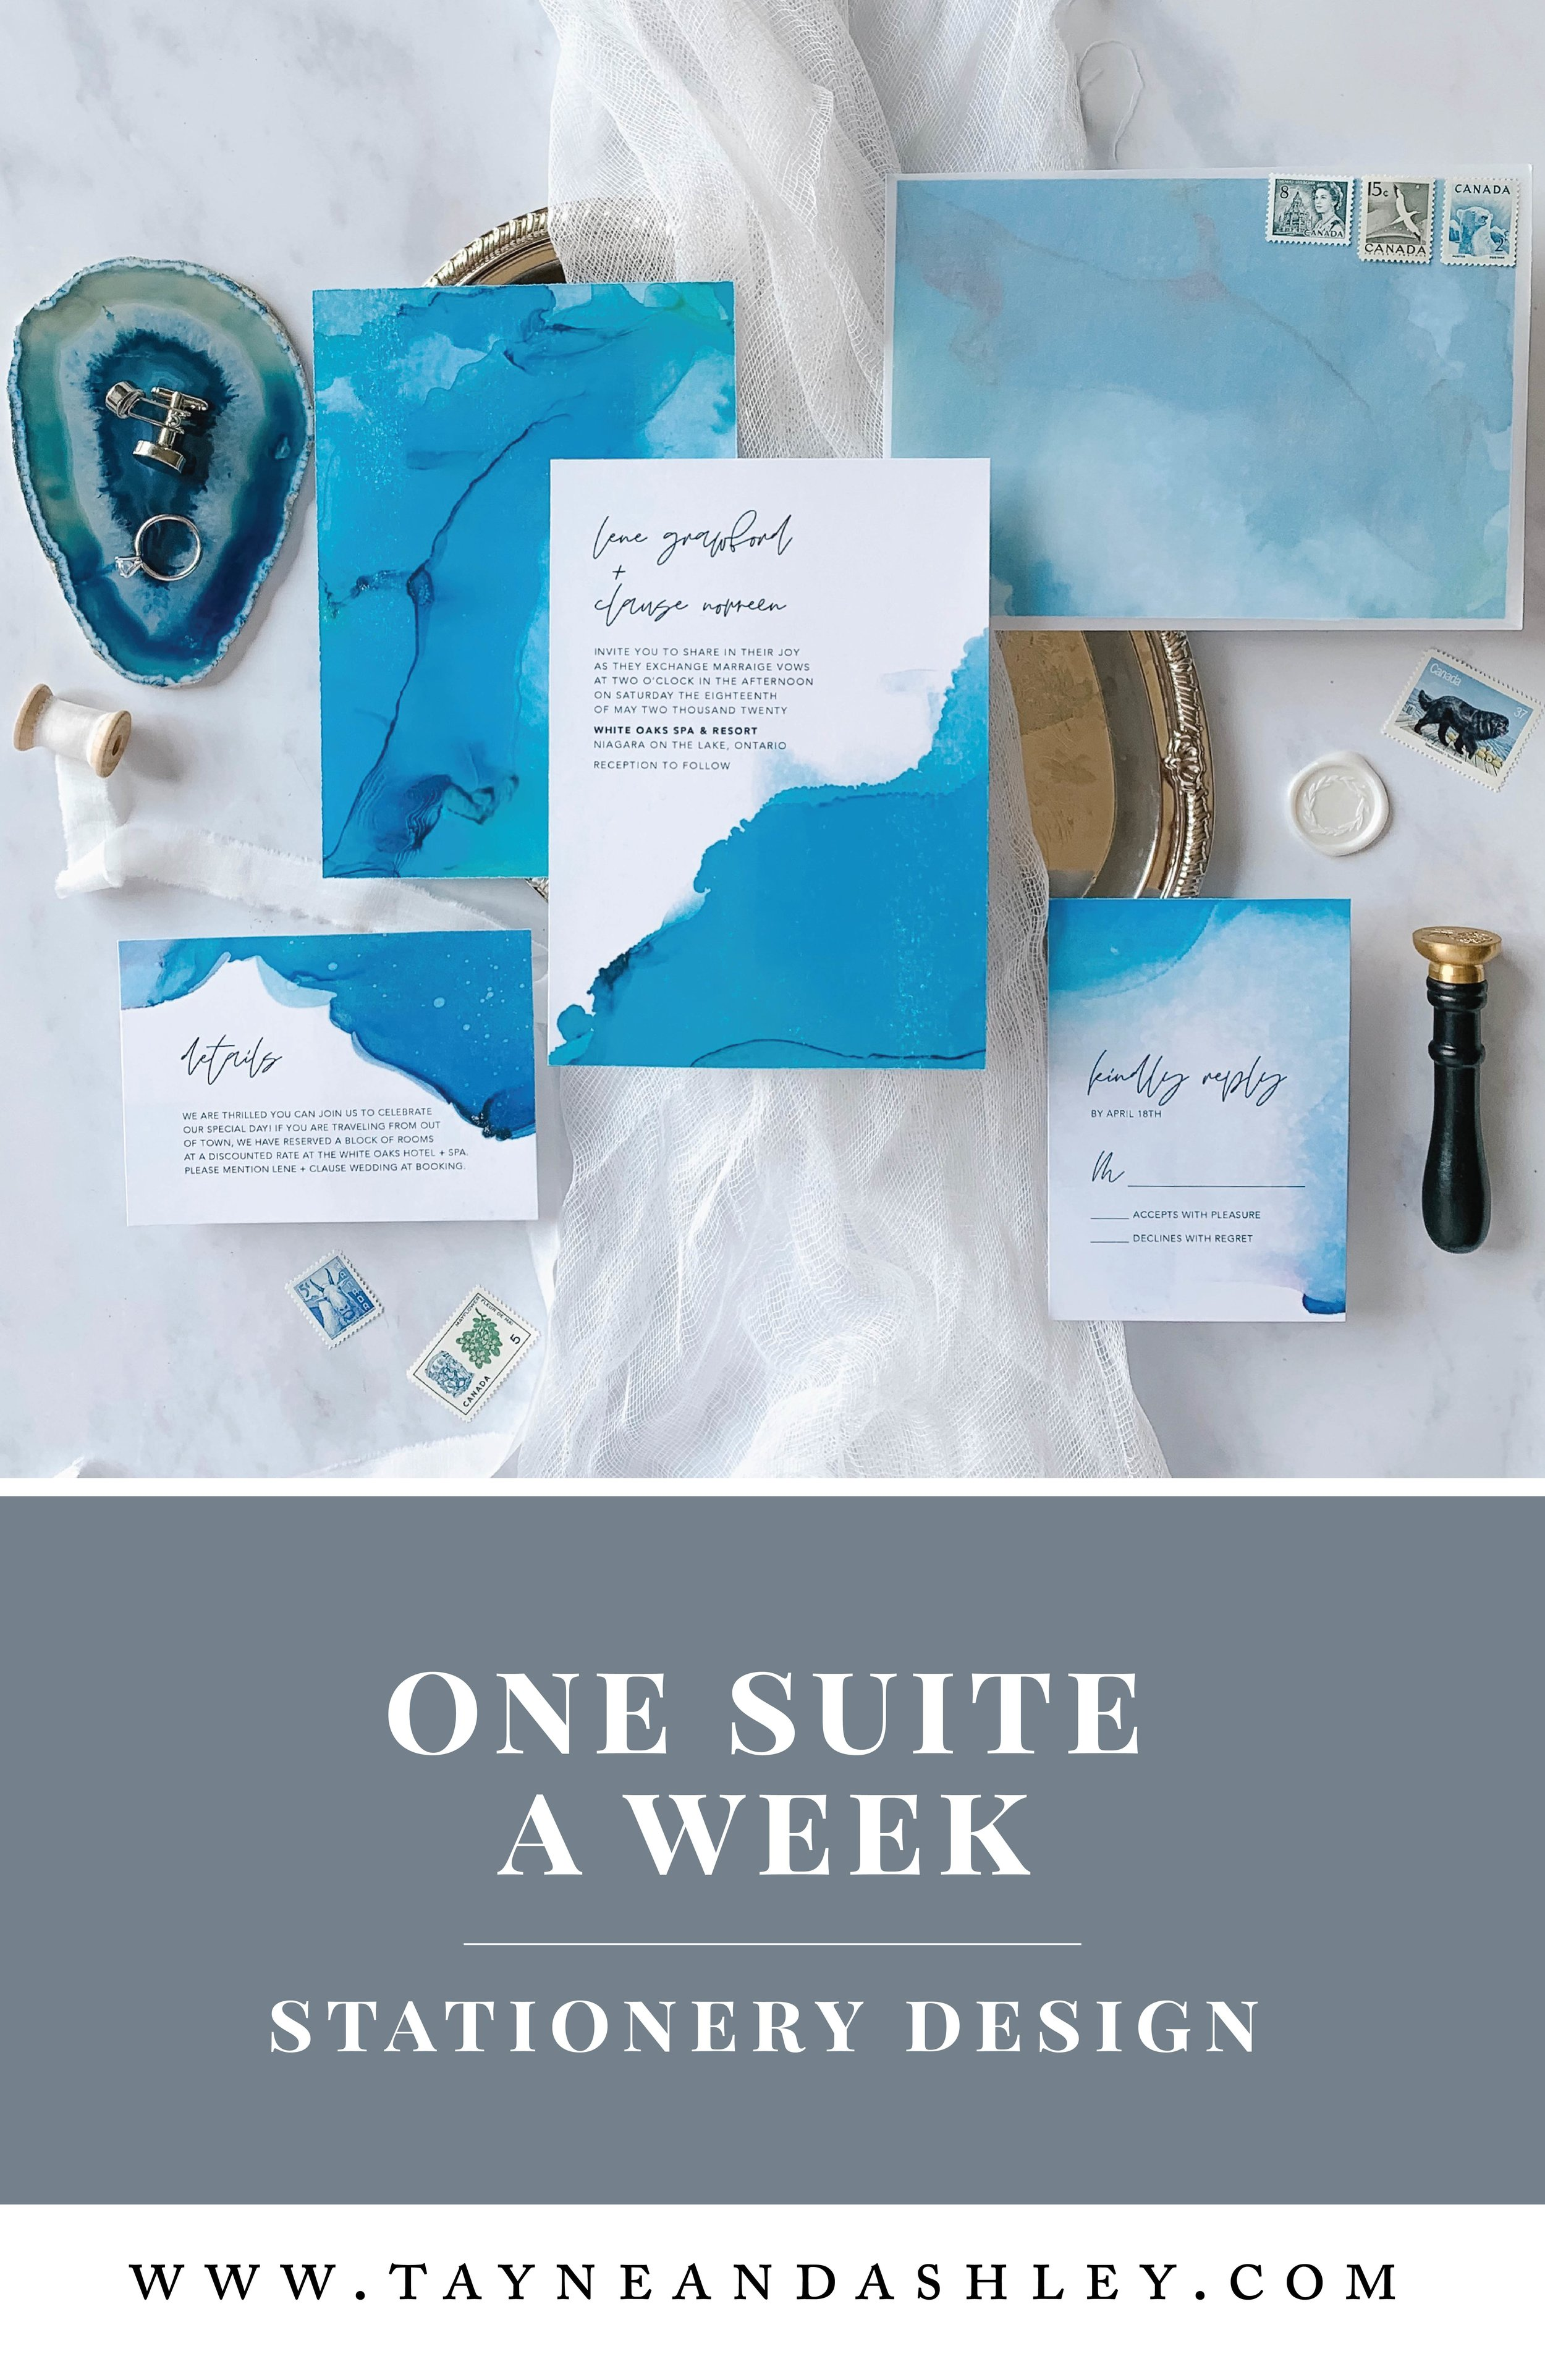 one-suite-a-week - tayne-and-ashley-calligraphy-wedding-invitations-pinterest-01-03.jpg